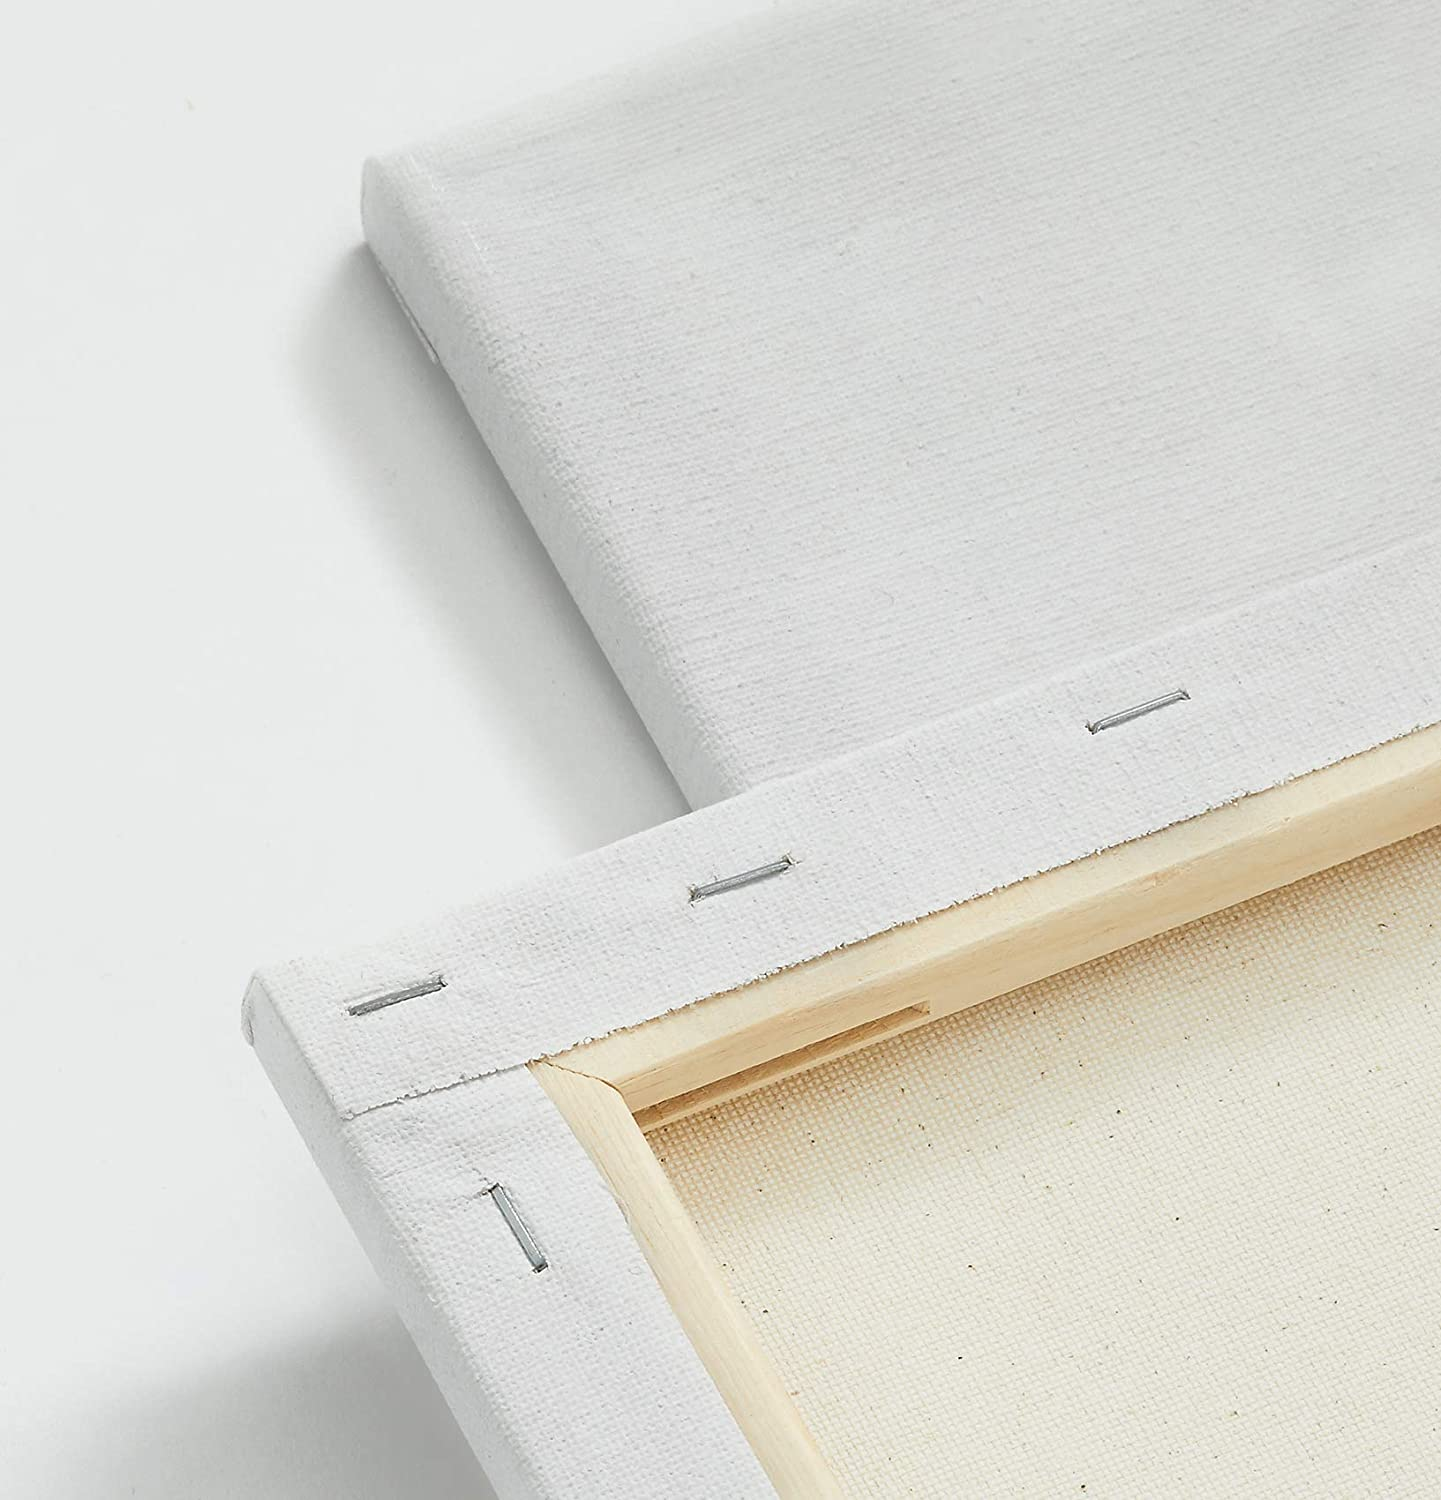 miniature 23 - Americanflat Stretched Canvas in White 100% Cotton Wooden Frames & Acid Free